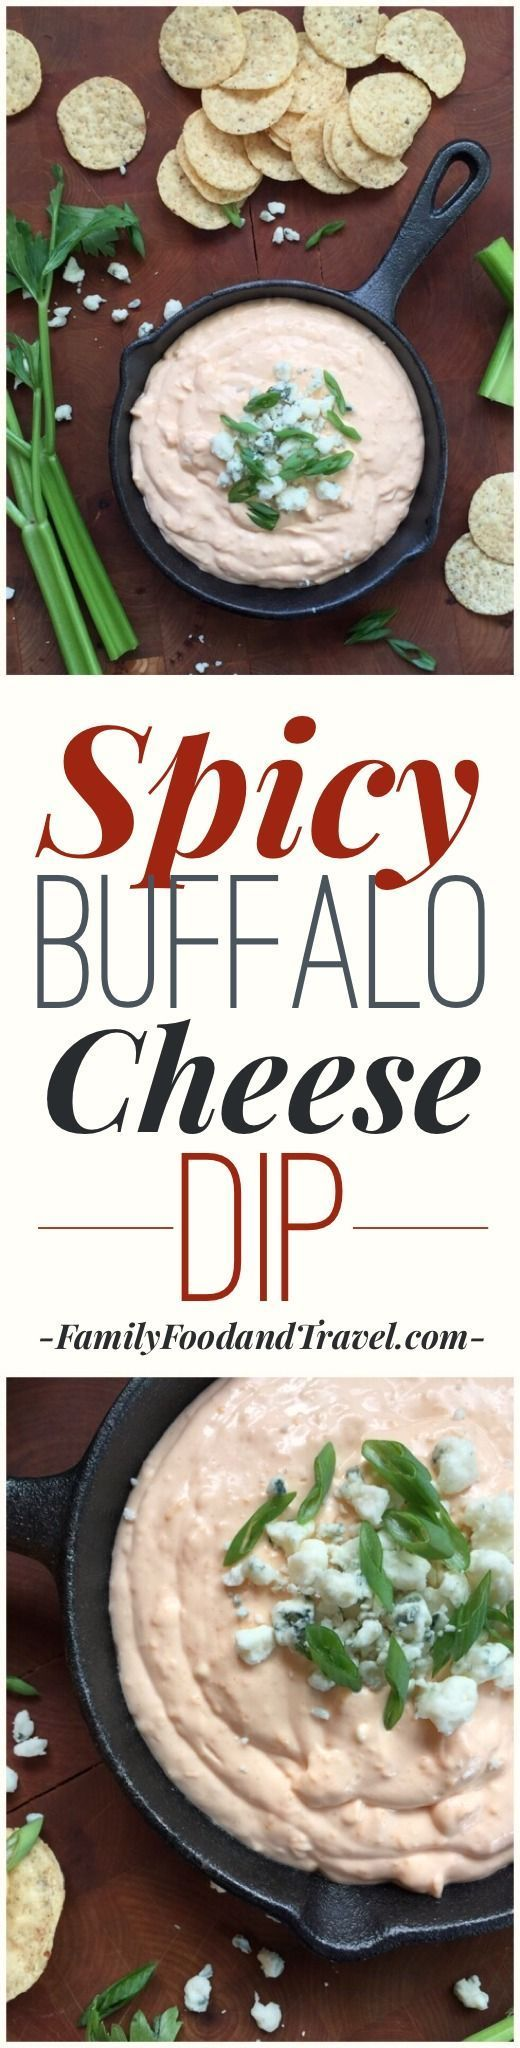 Spicy Buffalo Cheese Dip - a delicious and easy to make dip perfect for game day and every party - Family Food And Travel